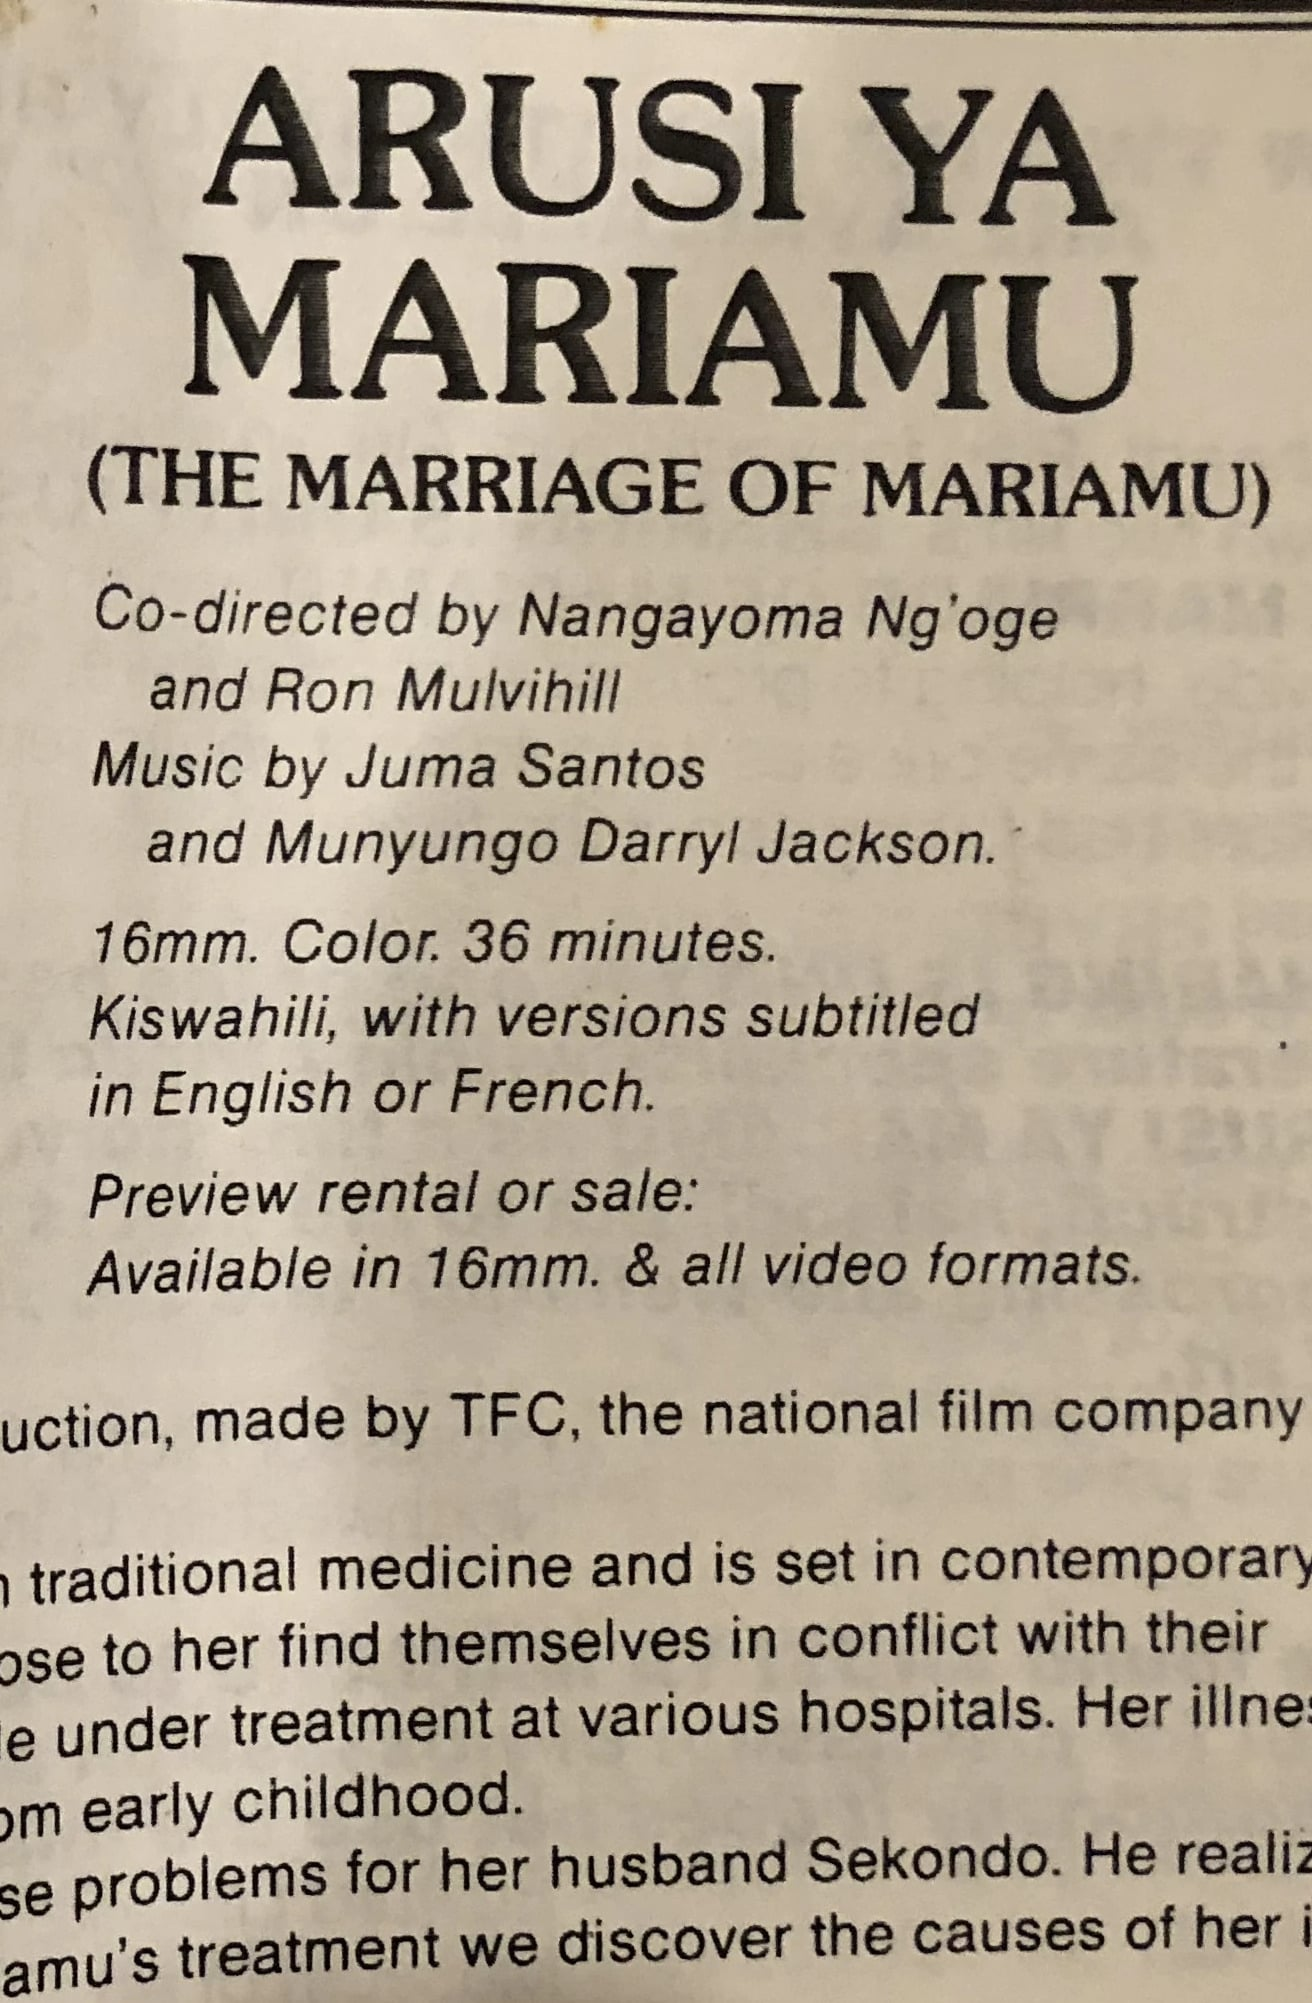 The Marriage of Mariamu (1985)